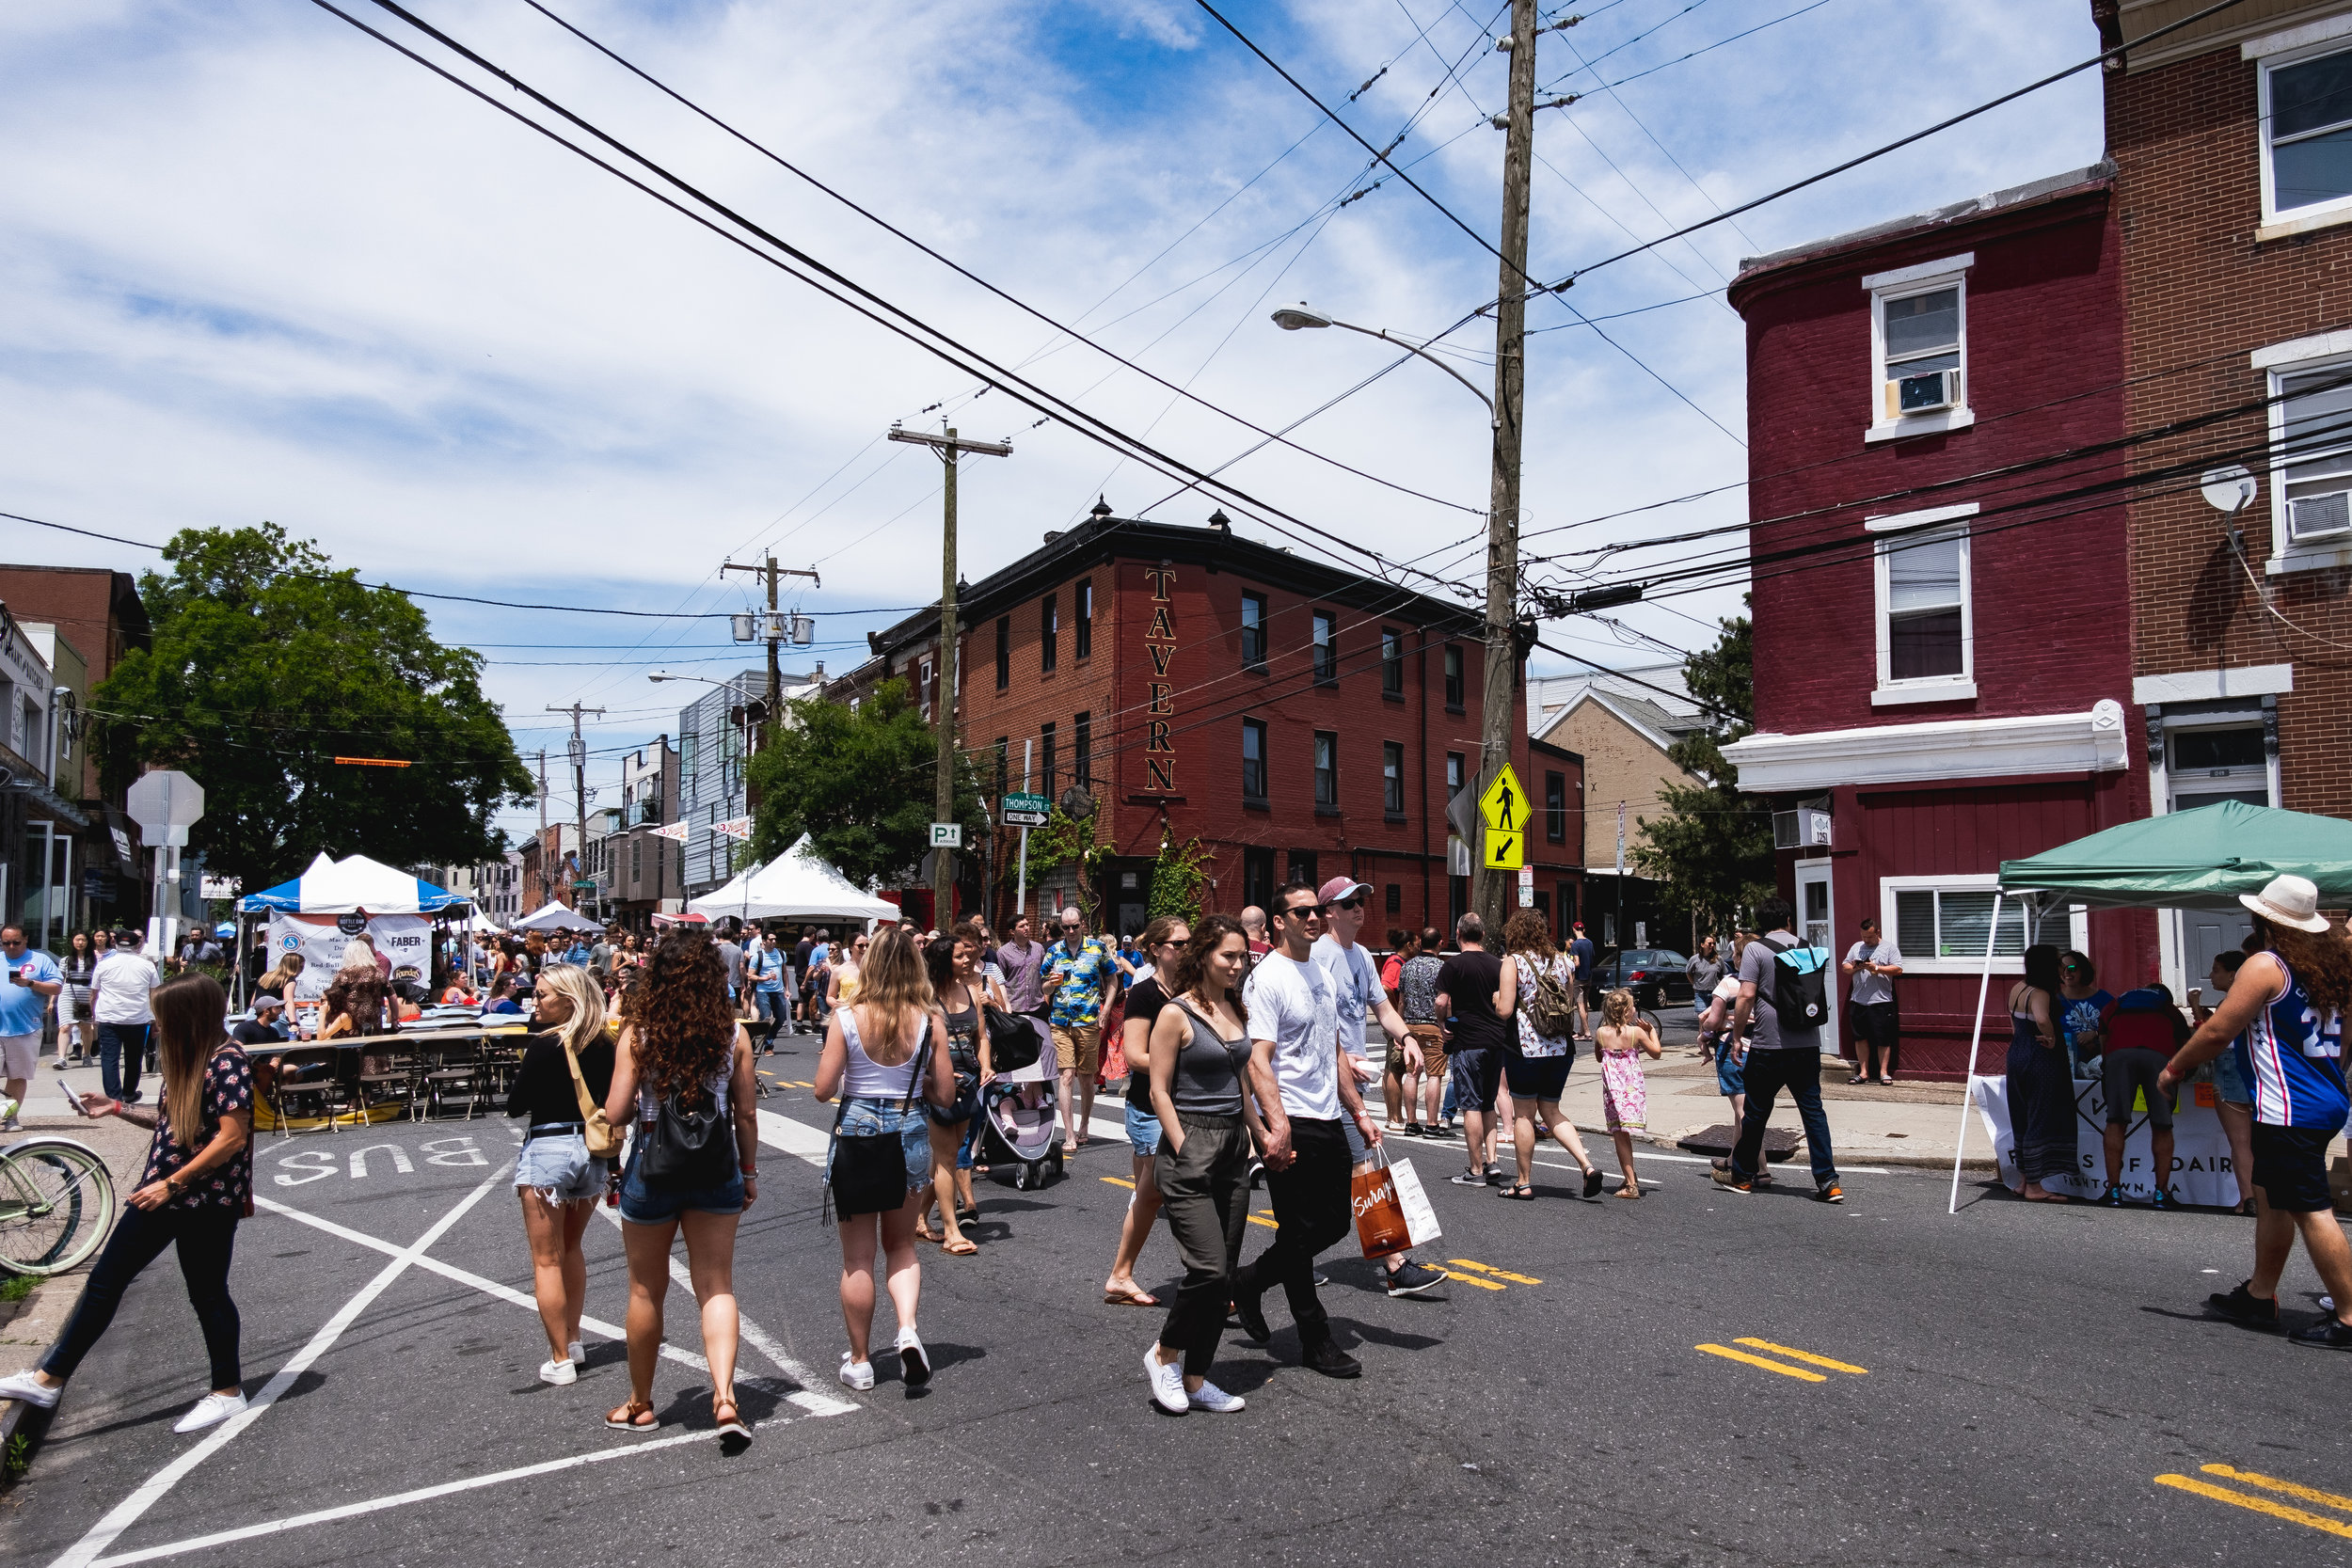 2019_PHILLY BEER WEEK_FISHTOWN FESTIVALE_EVENTS_THE PHILLY CHECKLIST-2.jpg